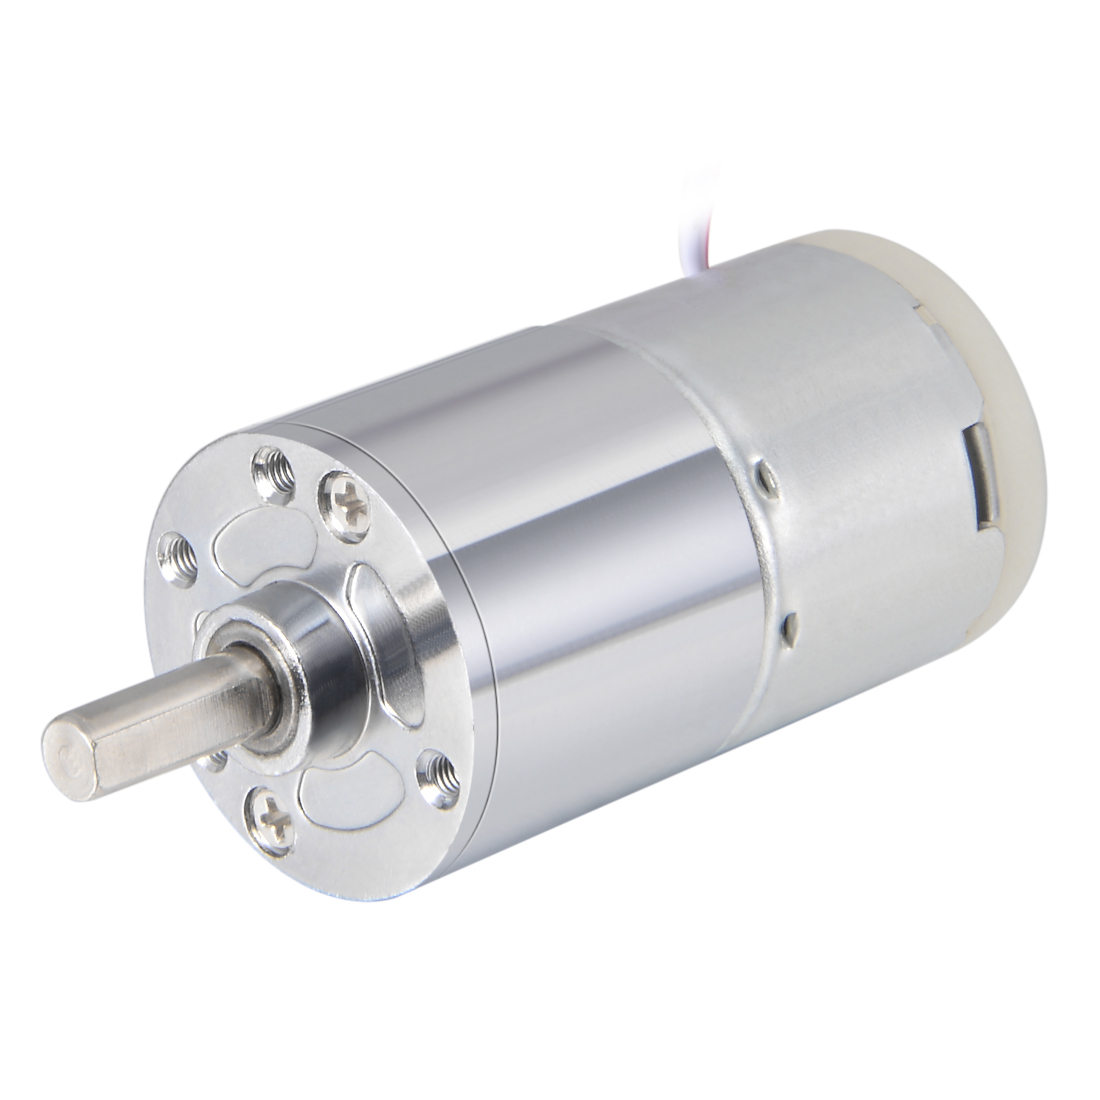 24V DC 15 RPM Gear Motor High Torque Reduction Gearbox Centric Output Shaft